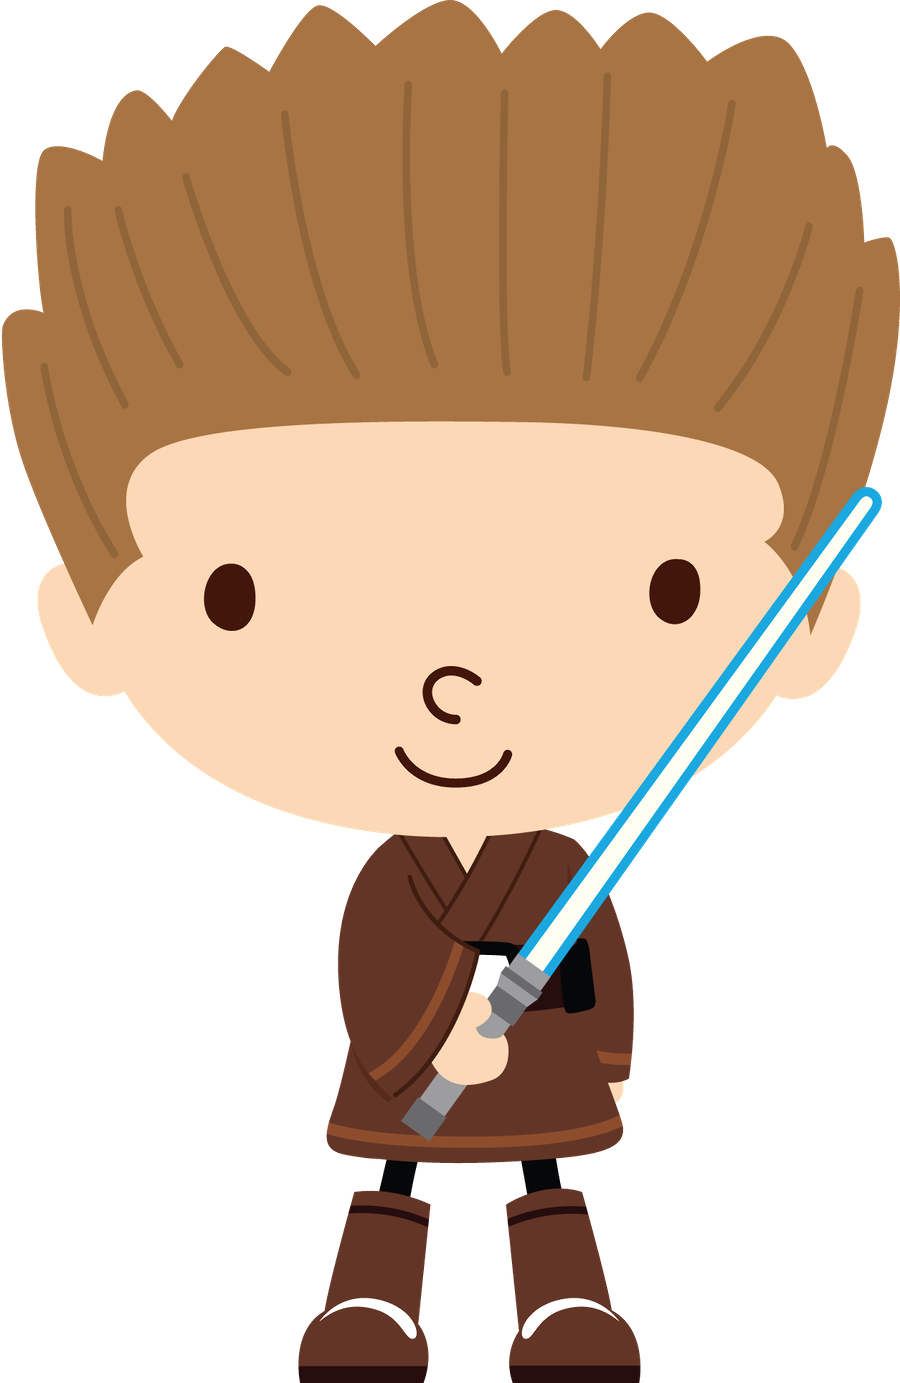 Star wars baby clipart library Star Wars - Minus | already felt- characters 2 | Pinterest | Star ... library